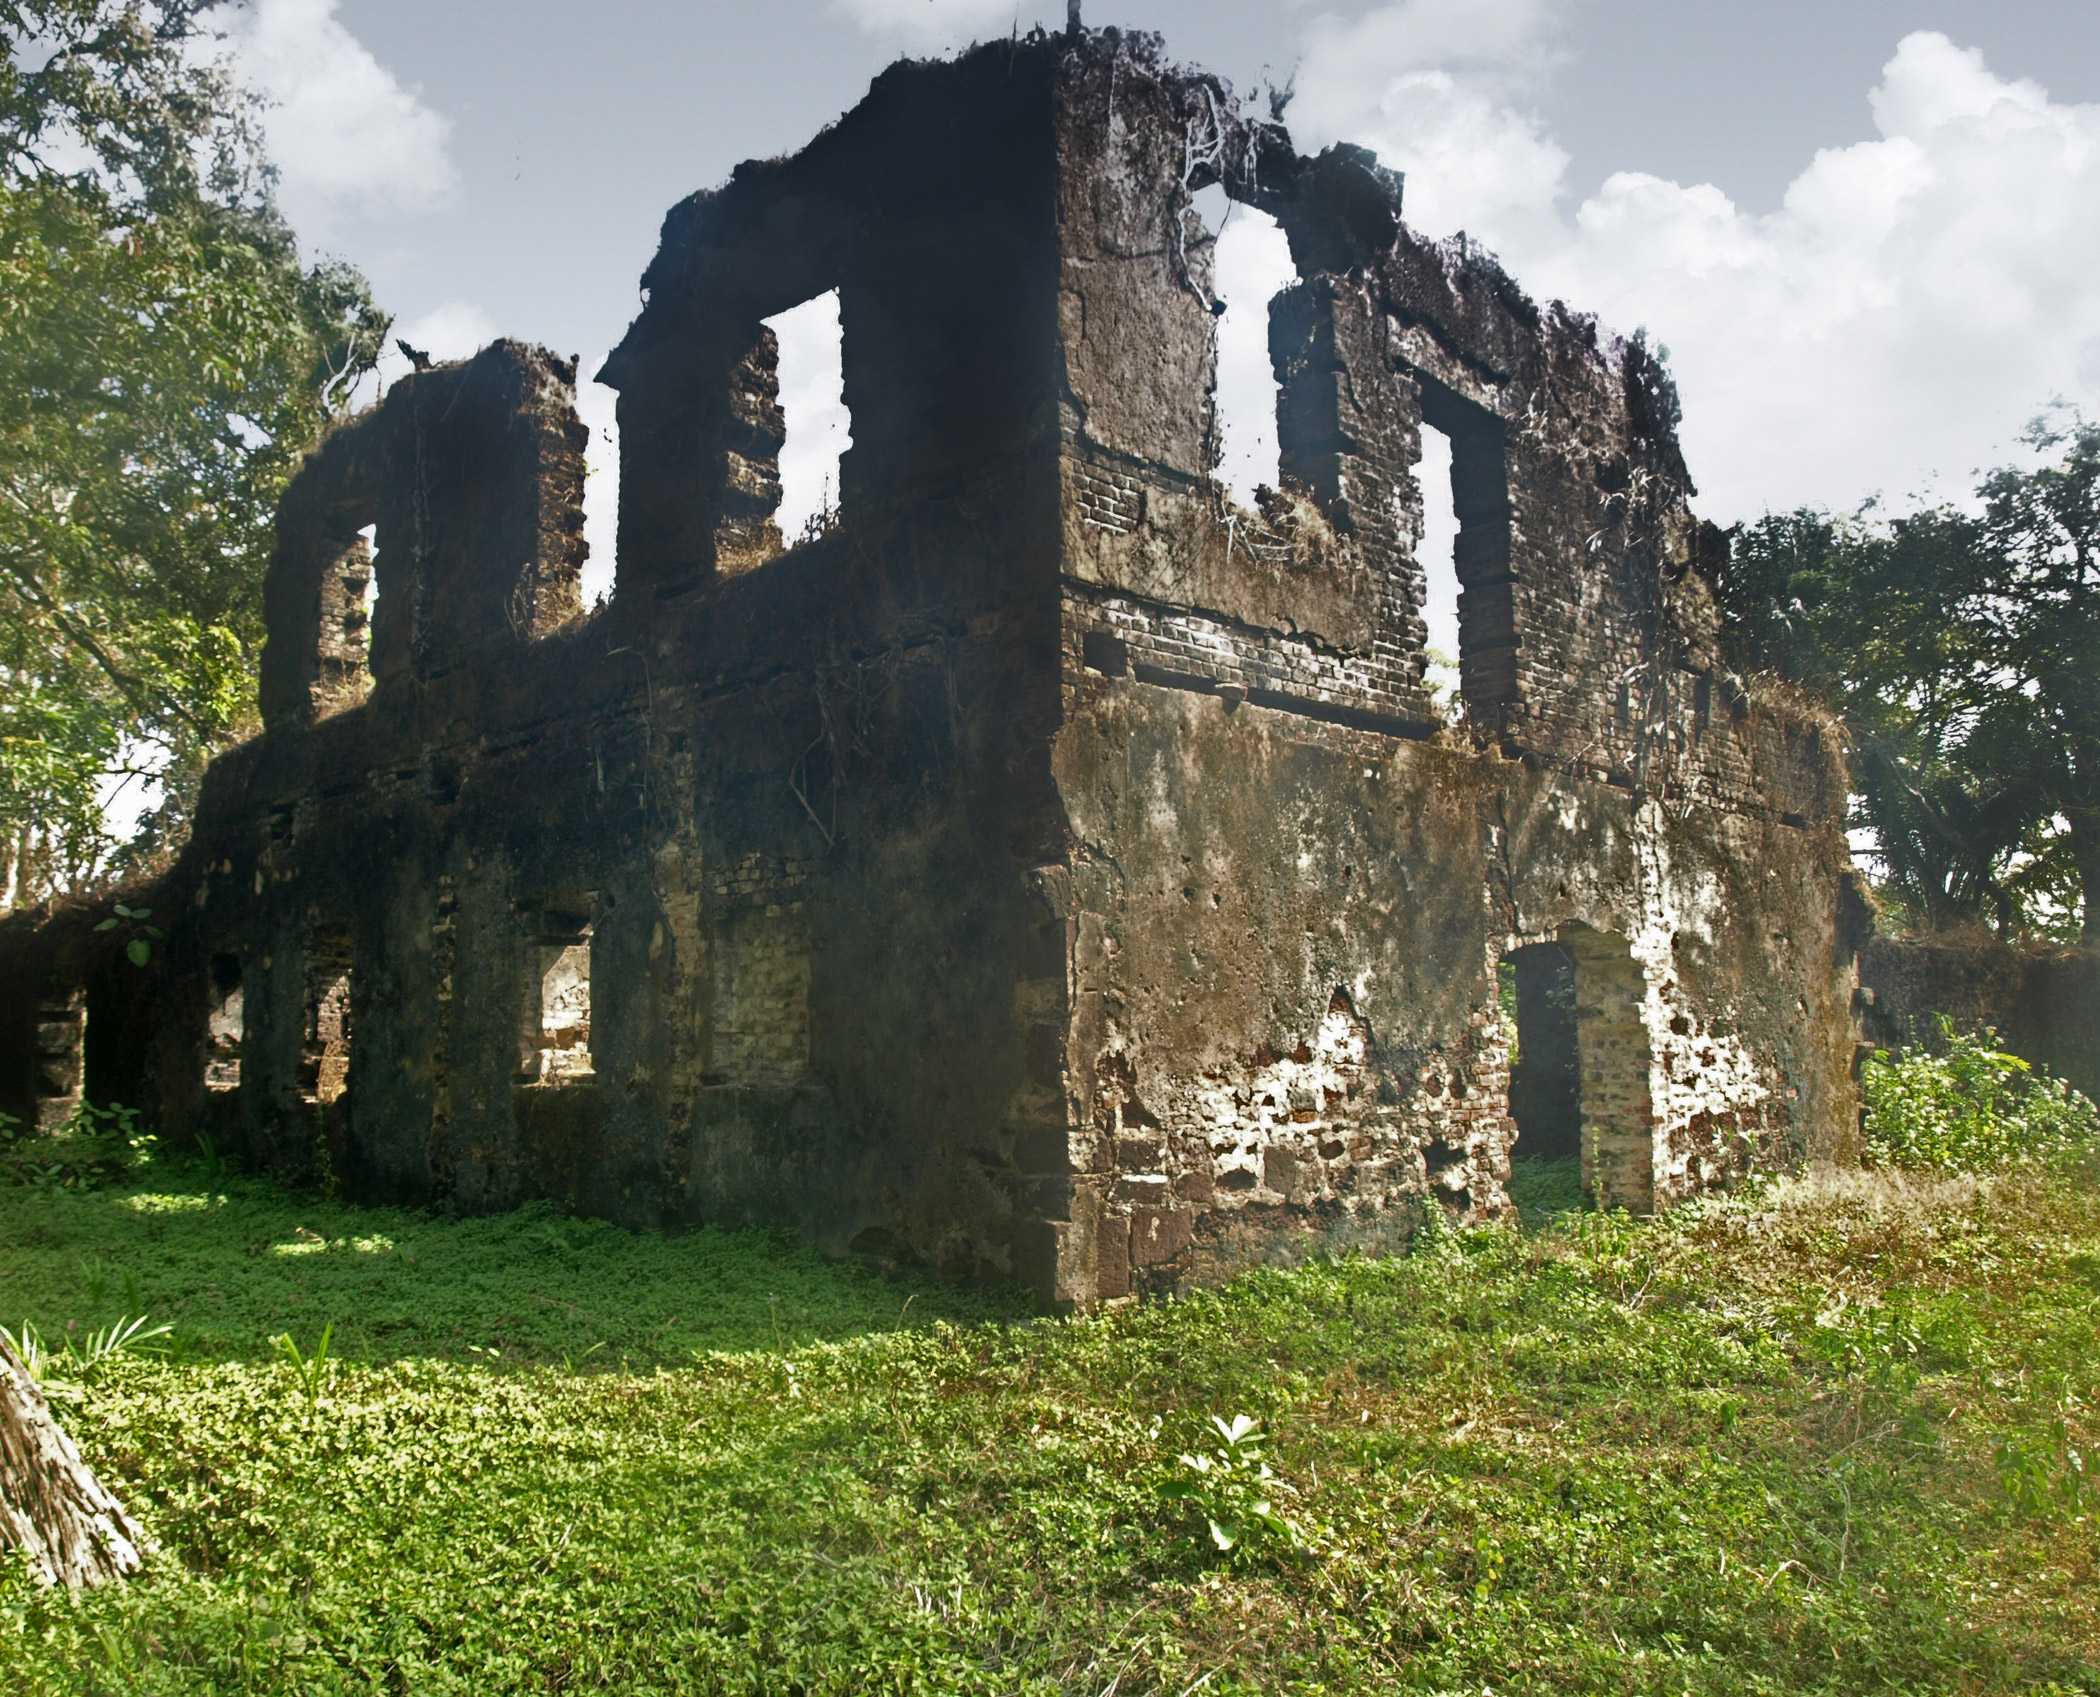 Sierra Leone, Bunce                               Island: Bunce Island, a site that testifies to a dark chapter in world history, is being slowly eroded by exposure to the elements and overwhelmed by the social and economic problems facing Sierra Leone.